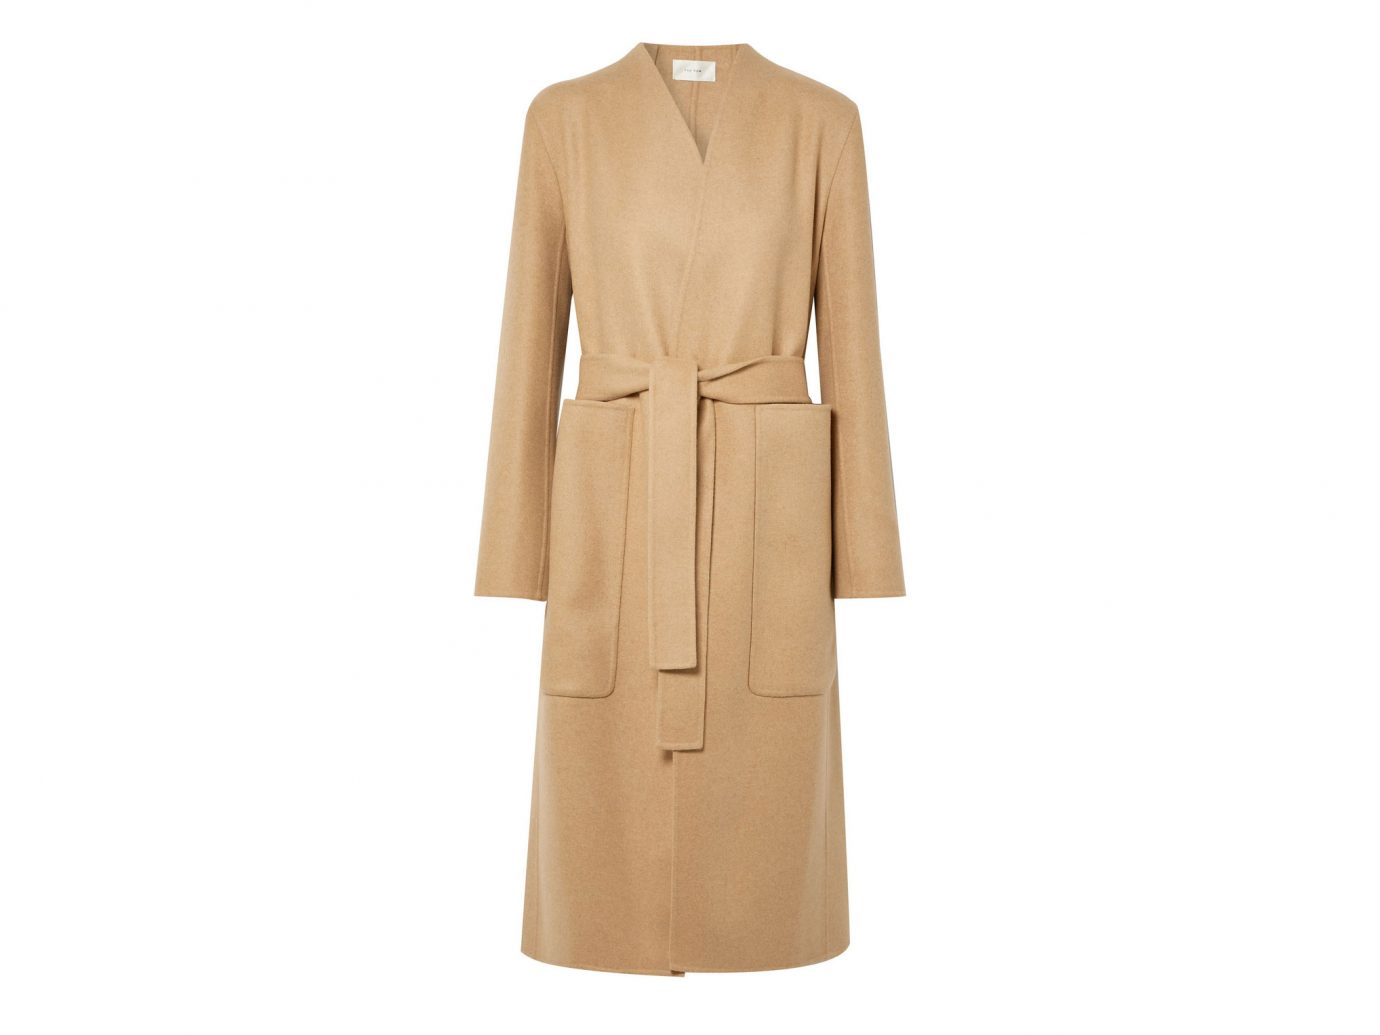 The Row Paret Belted Coat